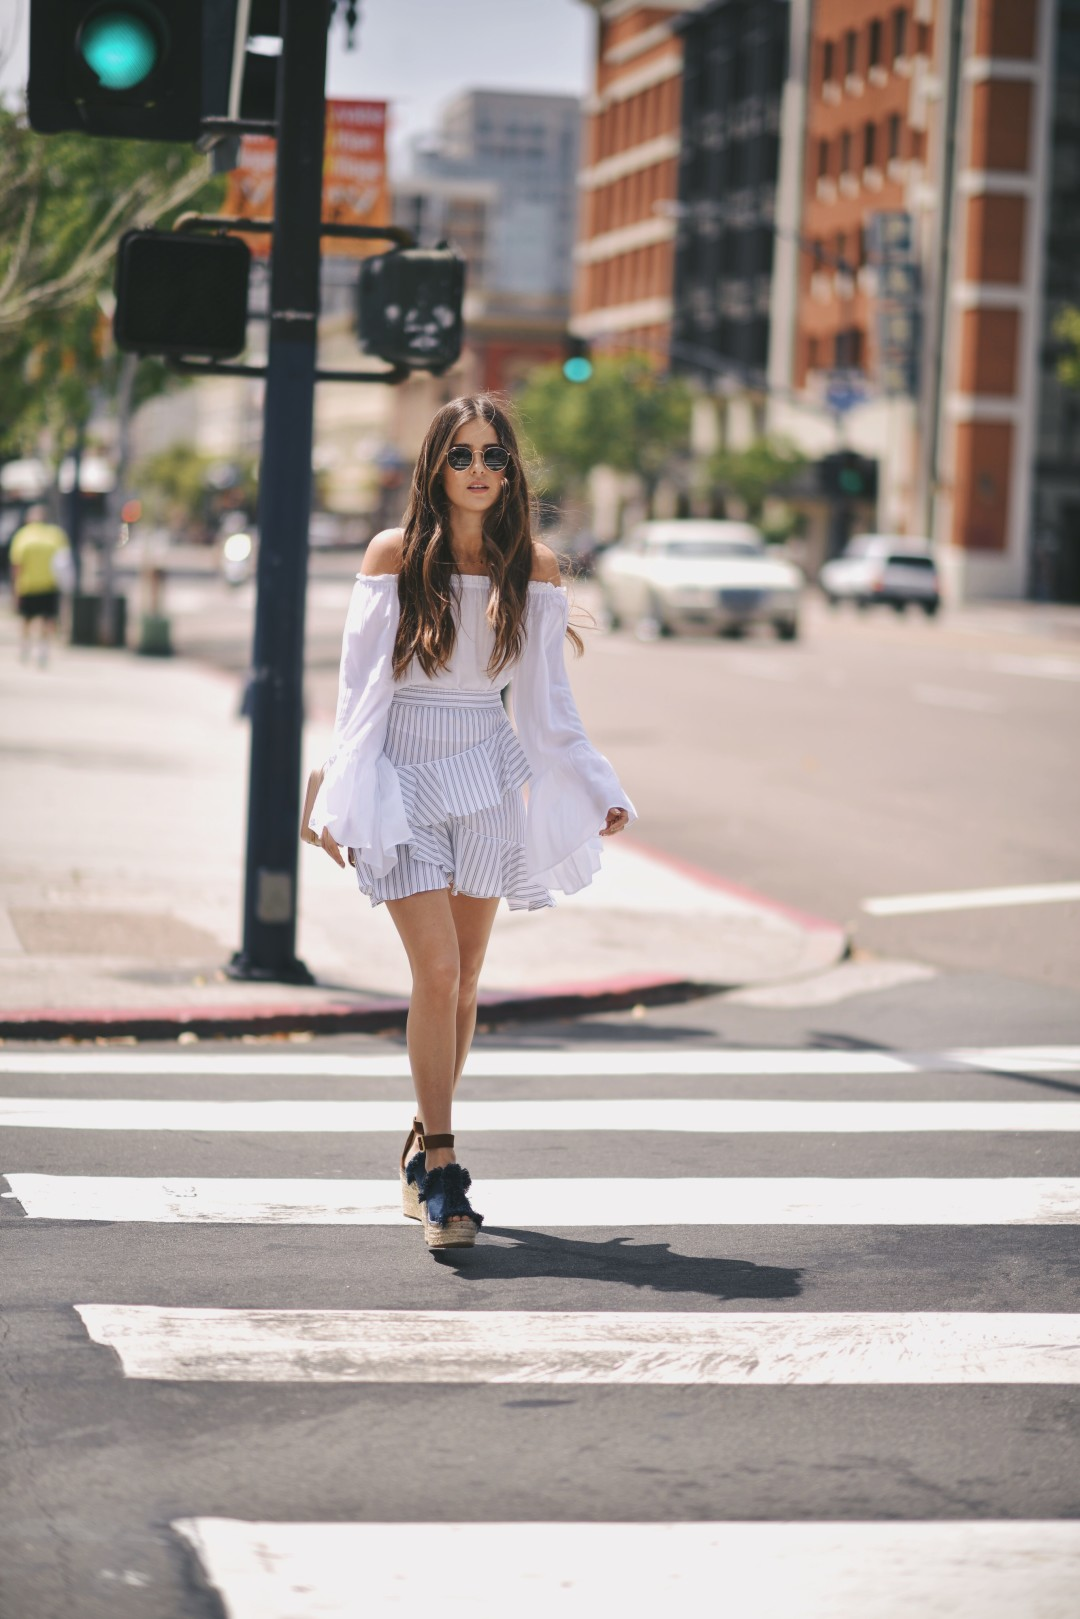 Platform shoes like these are a must have to wear with your most striking summer outfits! Paola Alberdi wears this pair of navy platforms with a gorgeous striped poplin skirt and a bell sleeved blouse. Skirt/Shoes: Luisaviaroma.